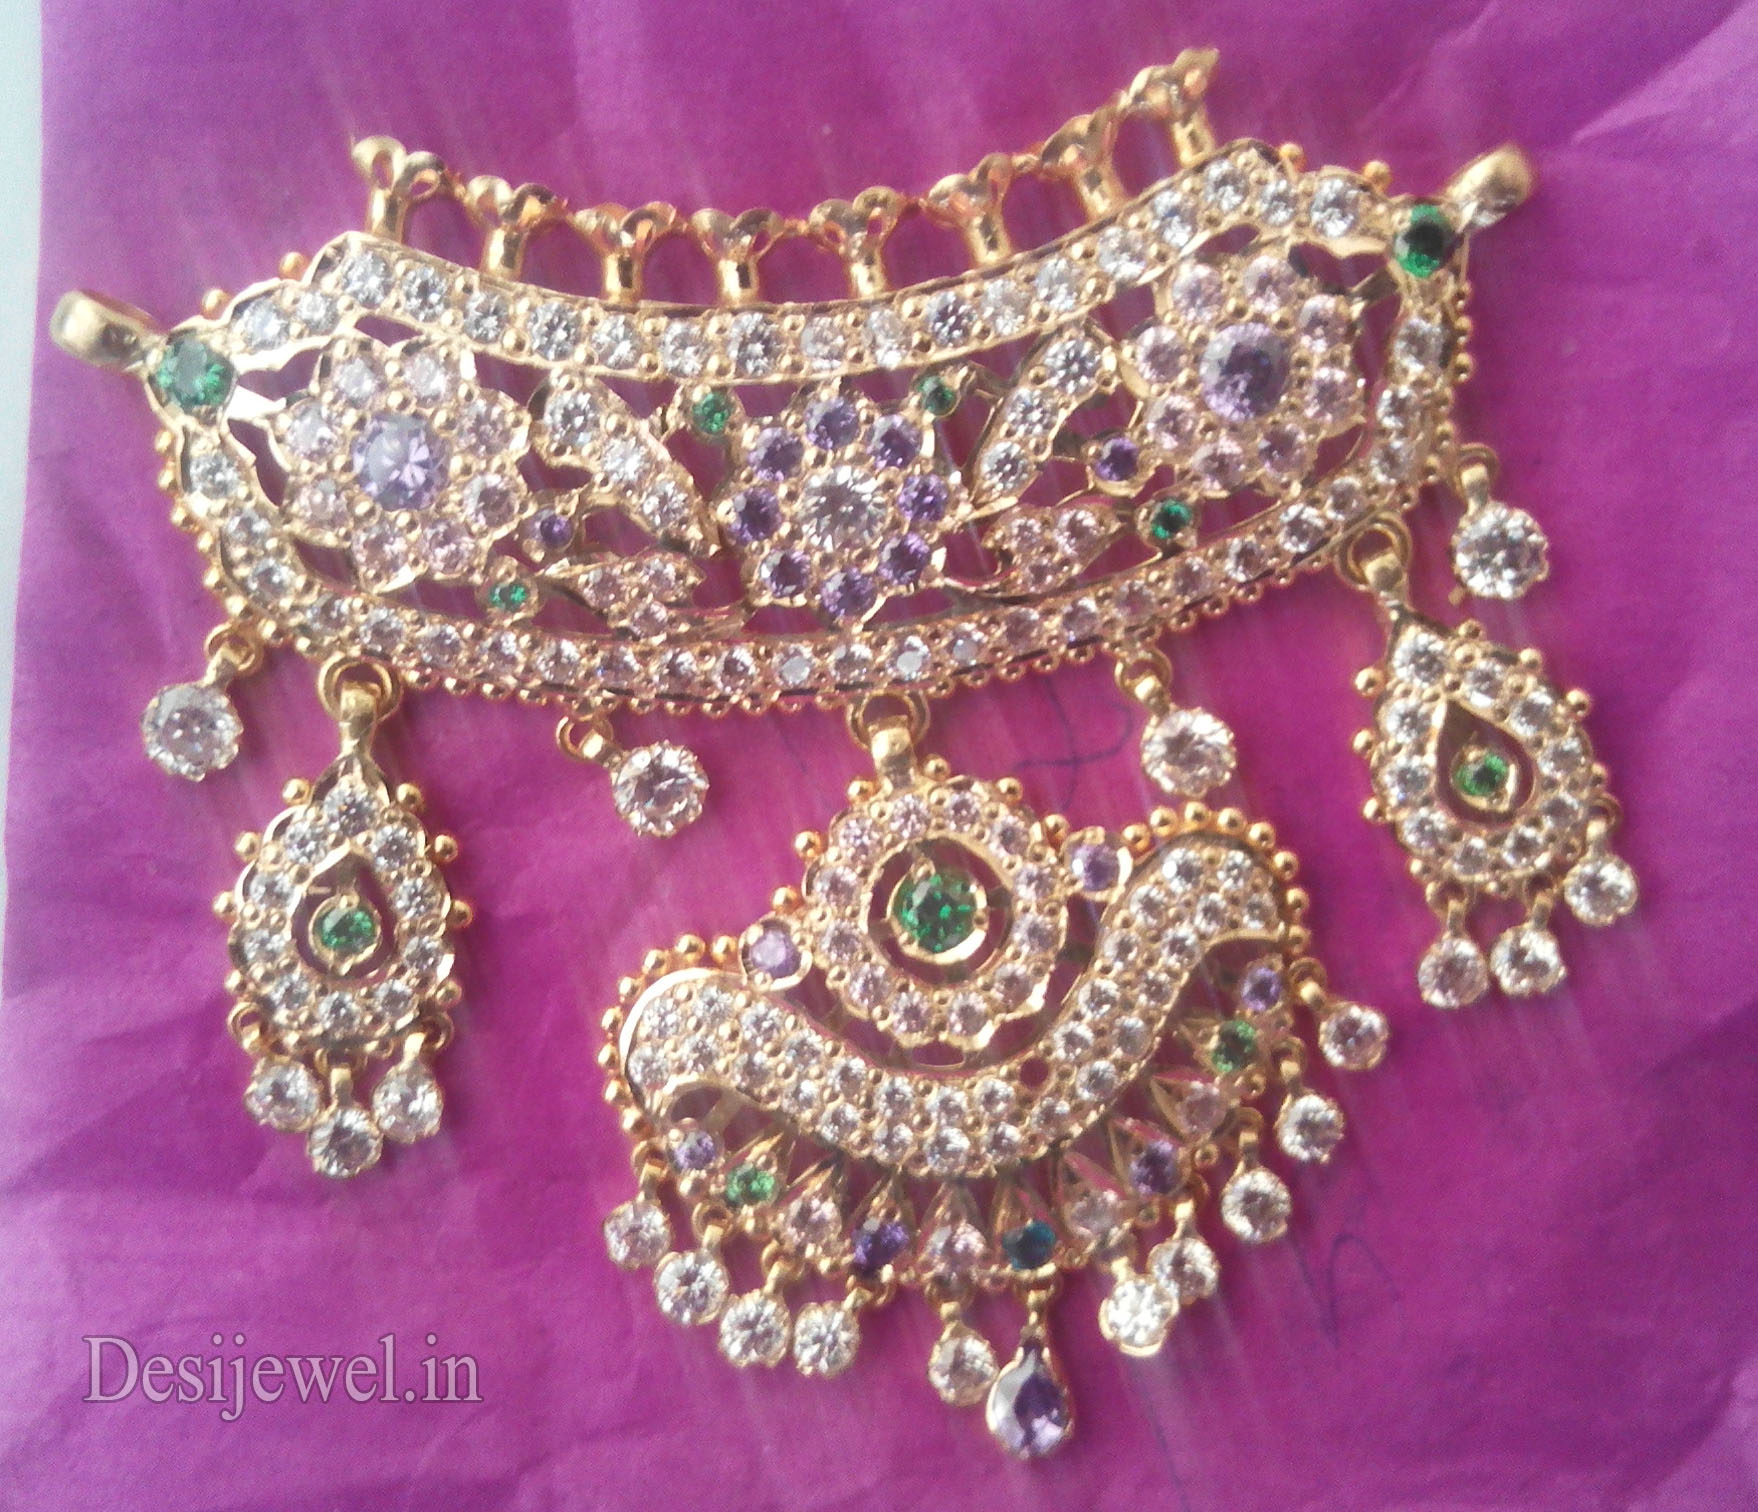 Marwadi Rajasthani Desi gold Mini Gala-Aad And Weight is 15-18 gm